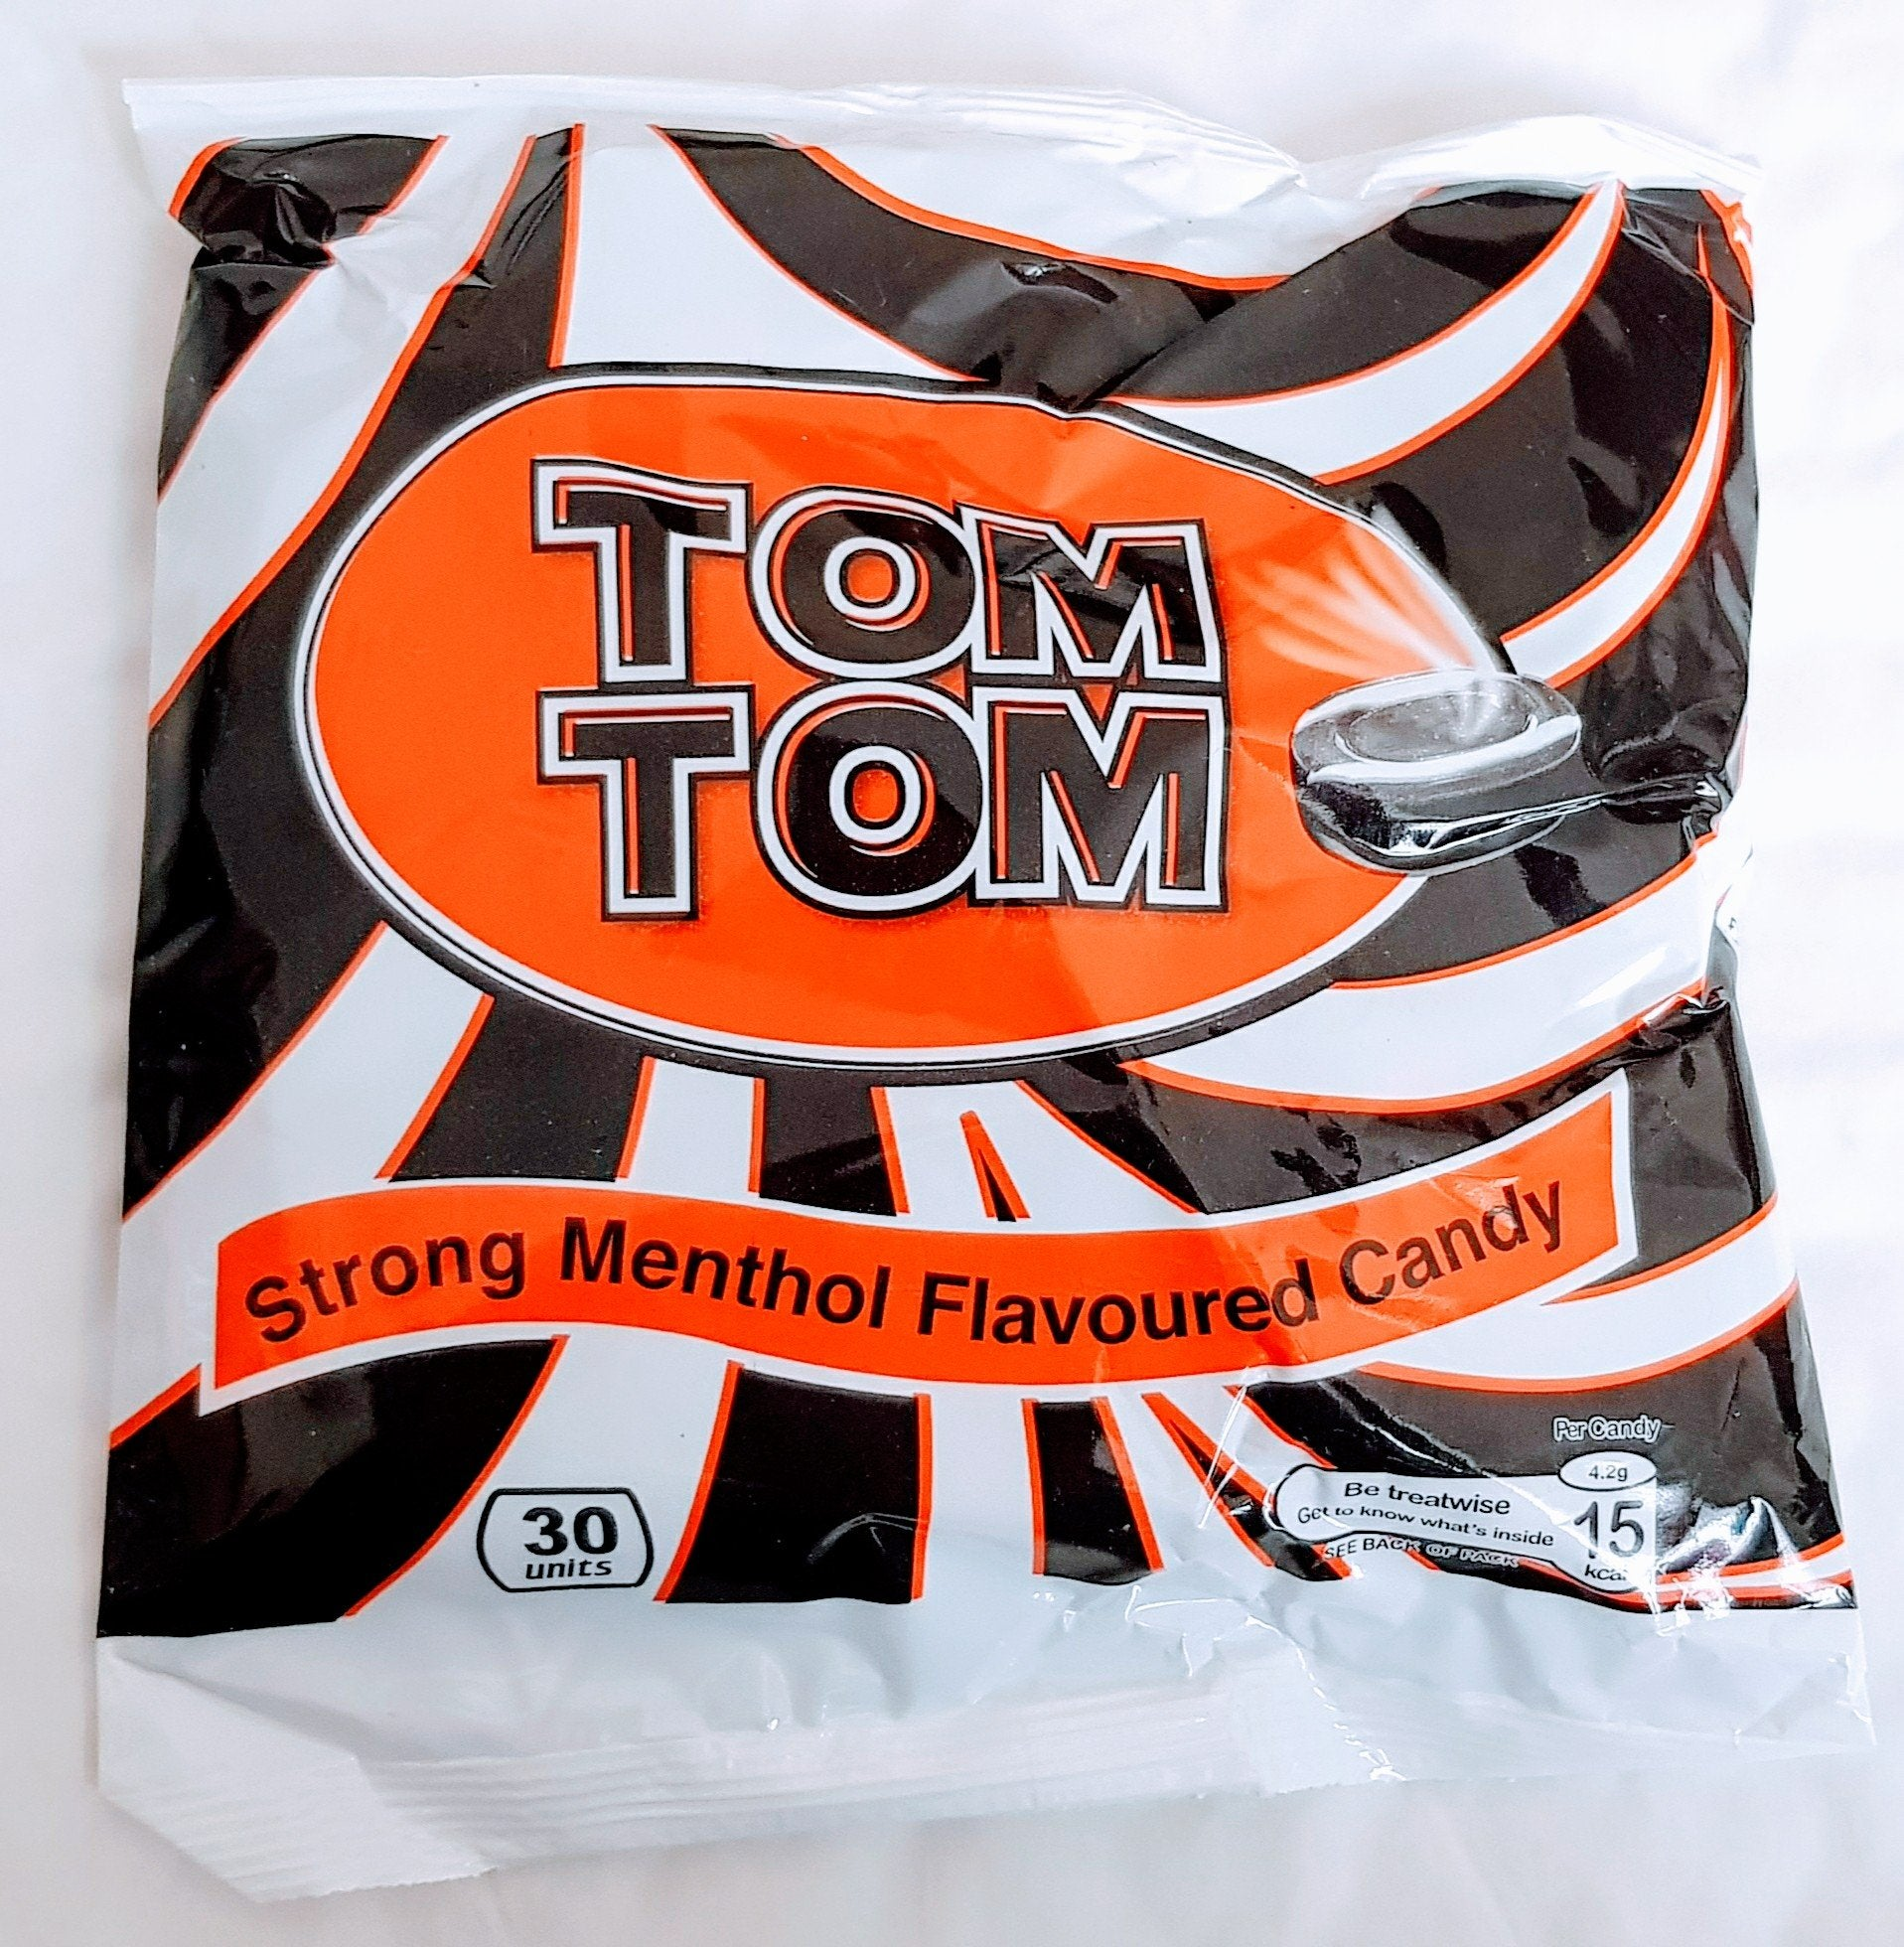 Tom Tom-Regular Flavor